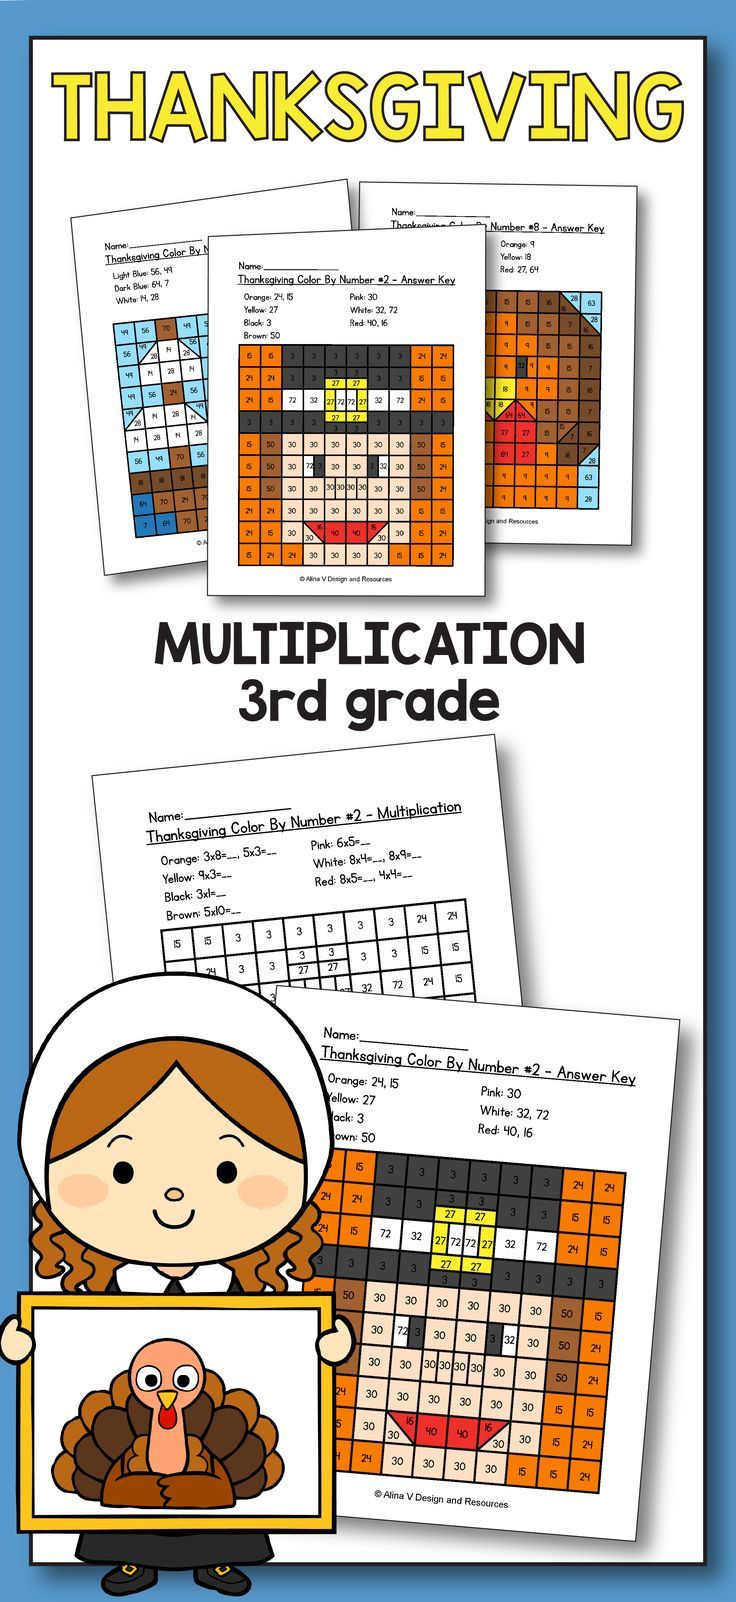 Thanksgiving Multiplication Color By Number Thanksgiving Math Worksheets Thanksgiving Math Worksheets Thanksgiving Math Thanksgiving Multiplication [ 1602 x 736 Pixel ]